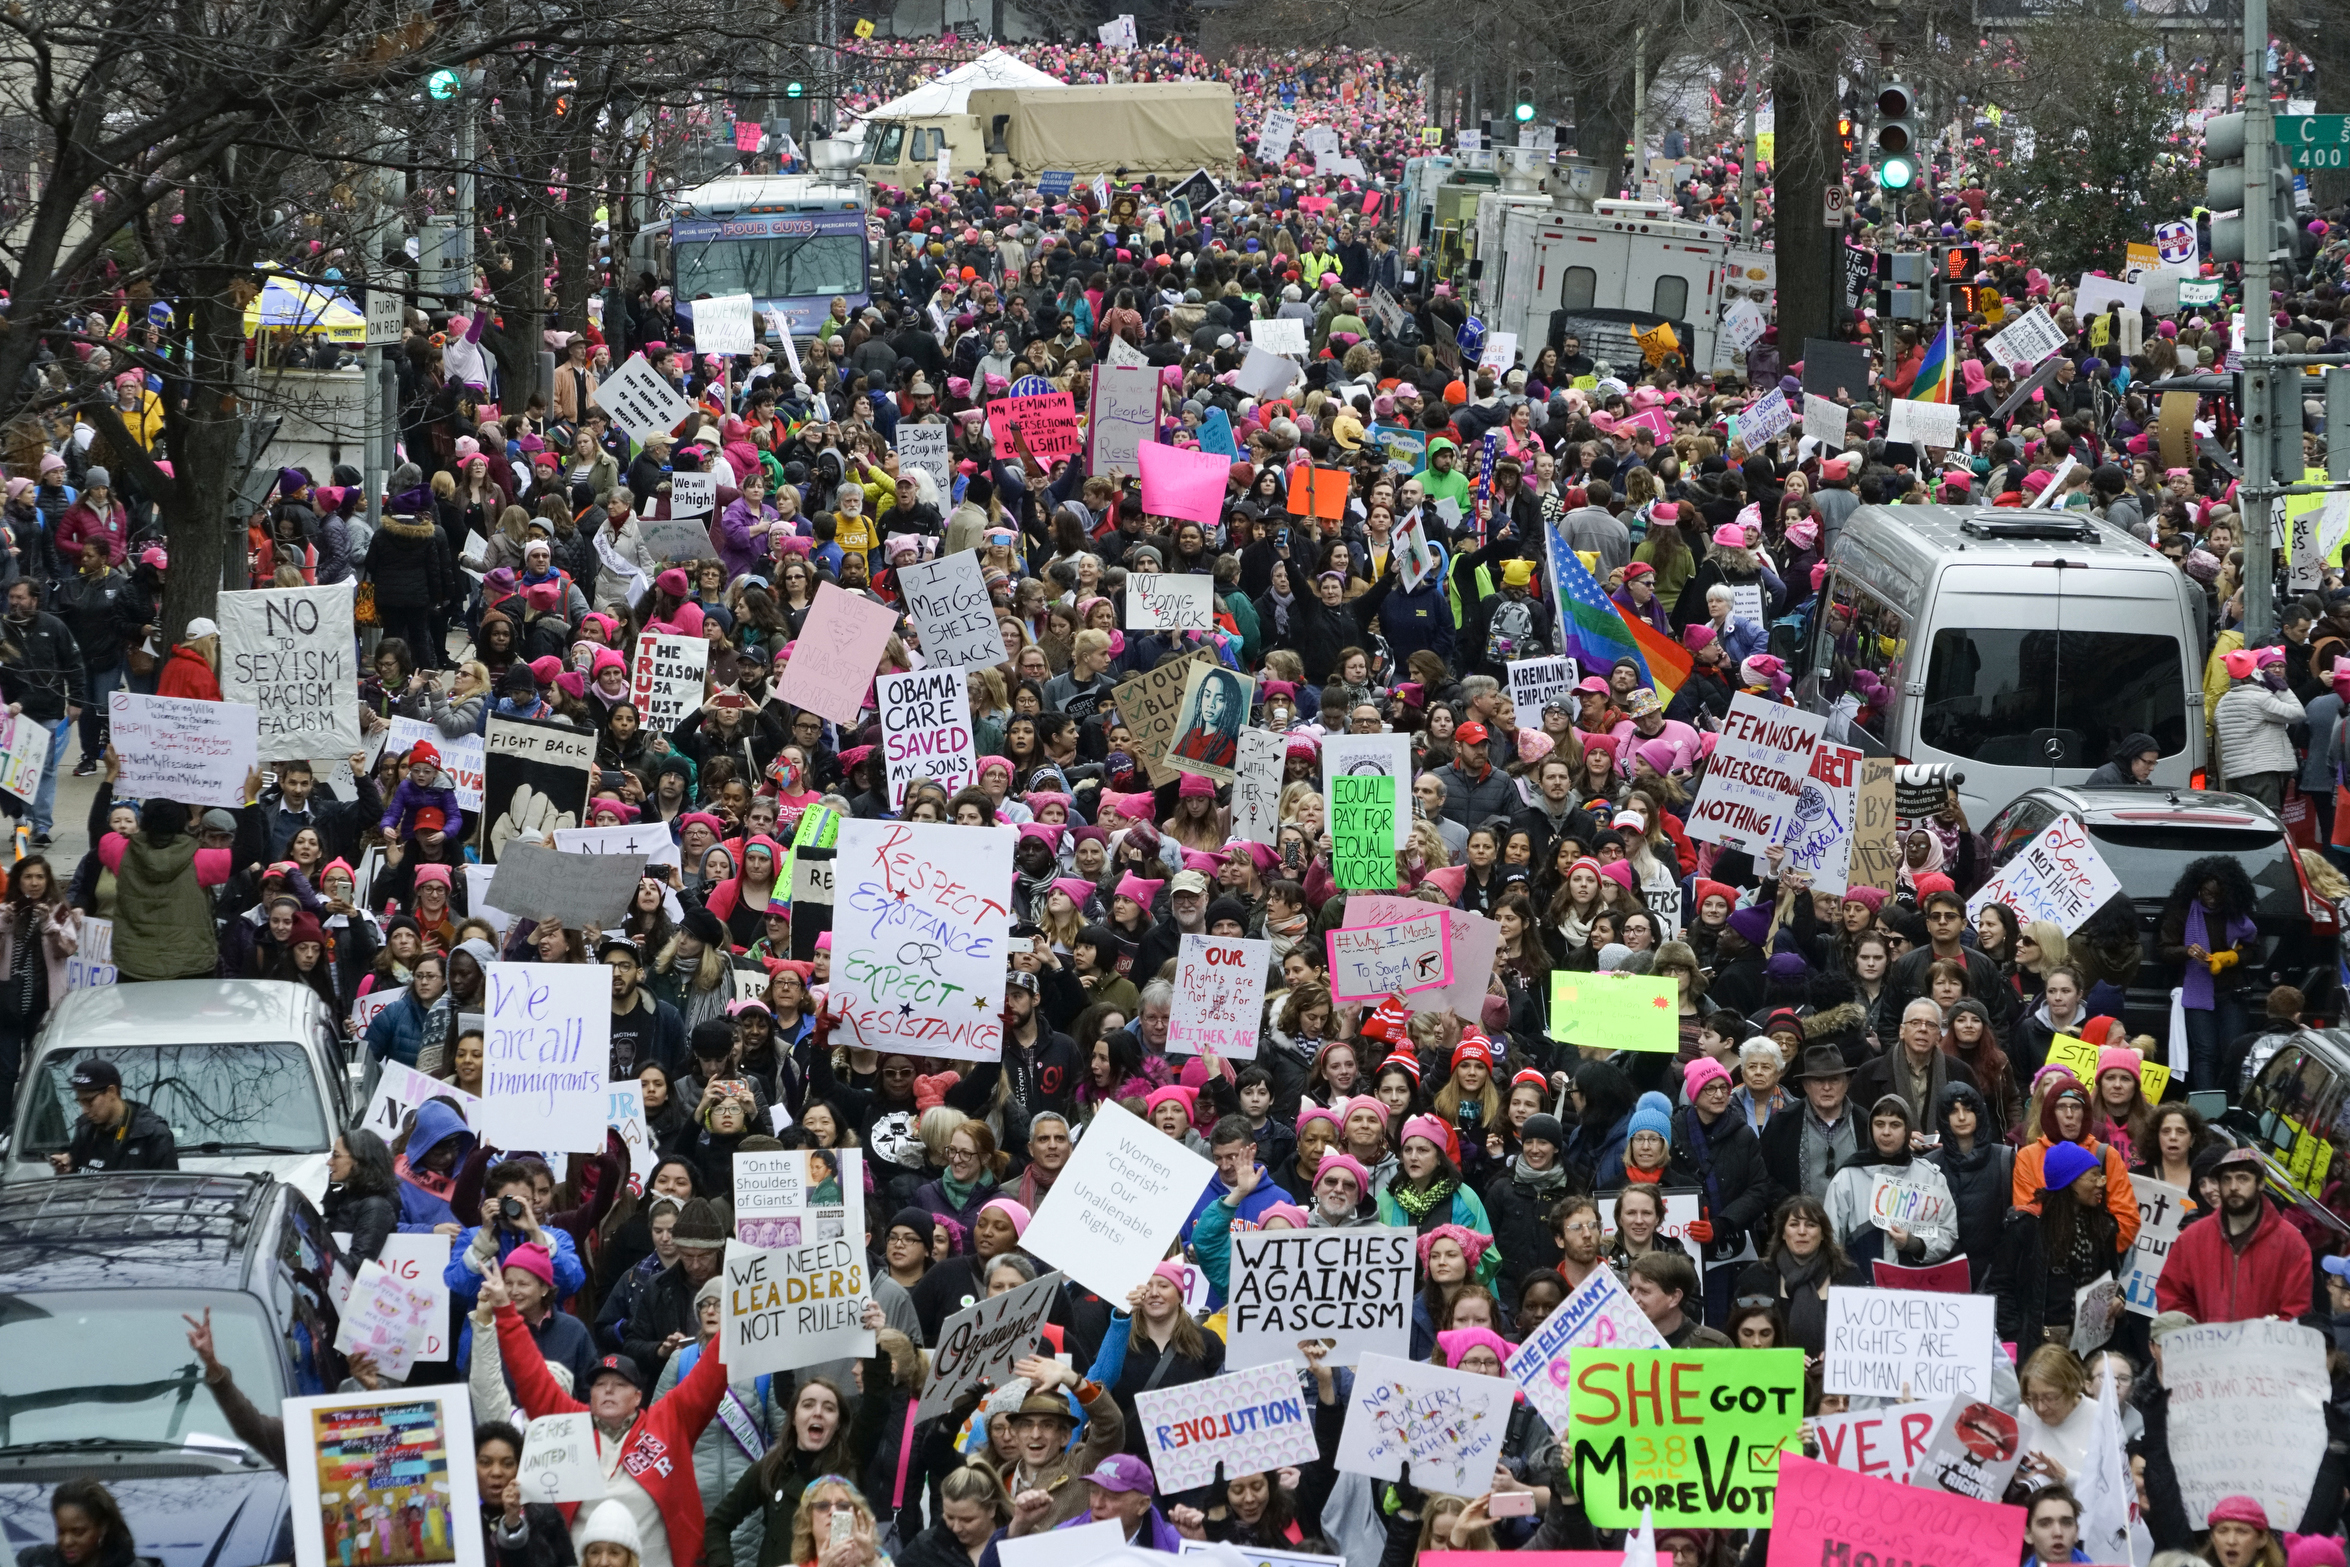 Protestors filling the streets at the Women's March on Washington, the day after the inauguration of Donald Trump as the 45th President of the United States in Washington, D.C., on Friday, Jan. 21, 2017.